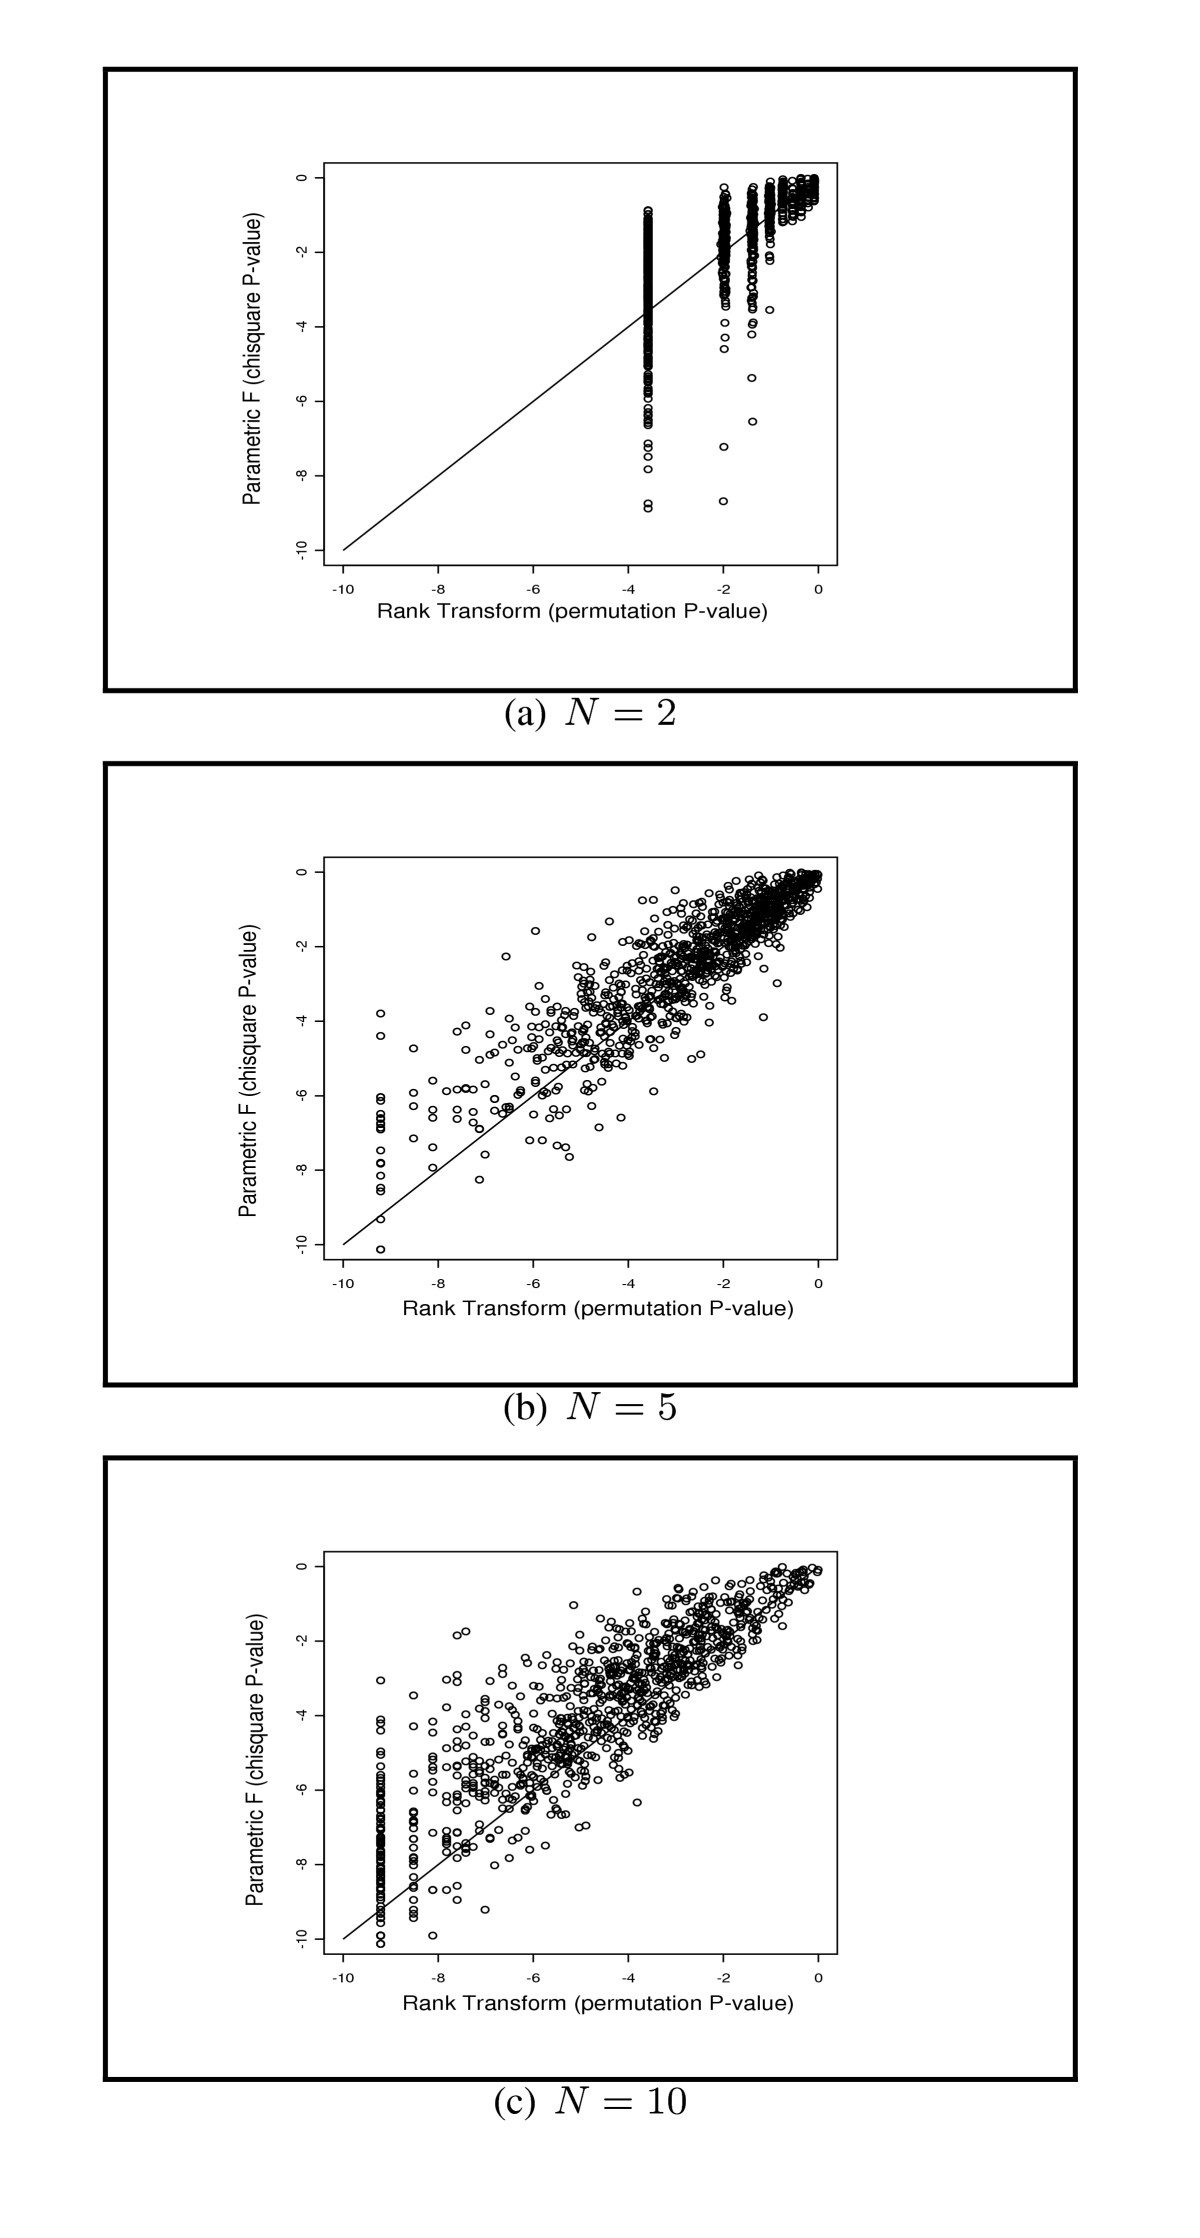 http://static-content.springer.com/image/art%3A10.1186%2F1471-2105-6-186/MediaObjects/12859_2005_Article_511_Fig1_HTML.jpg